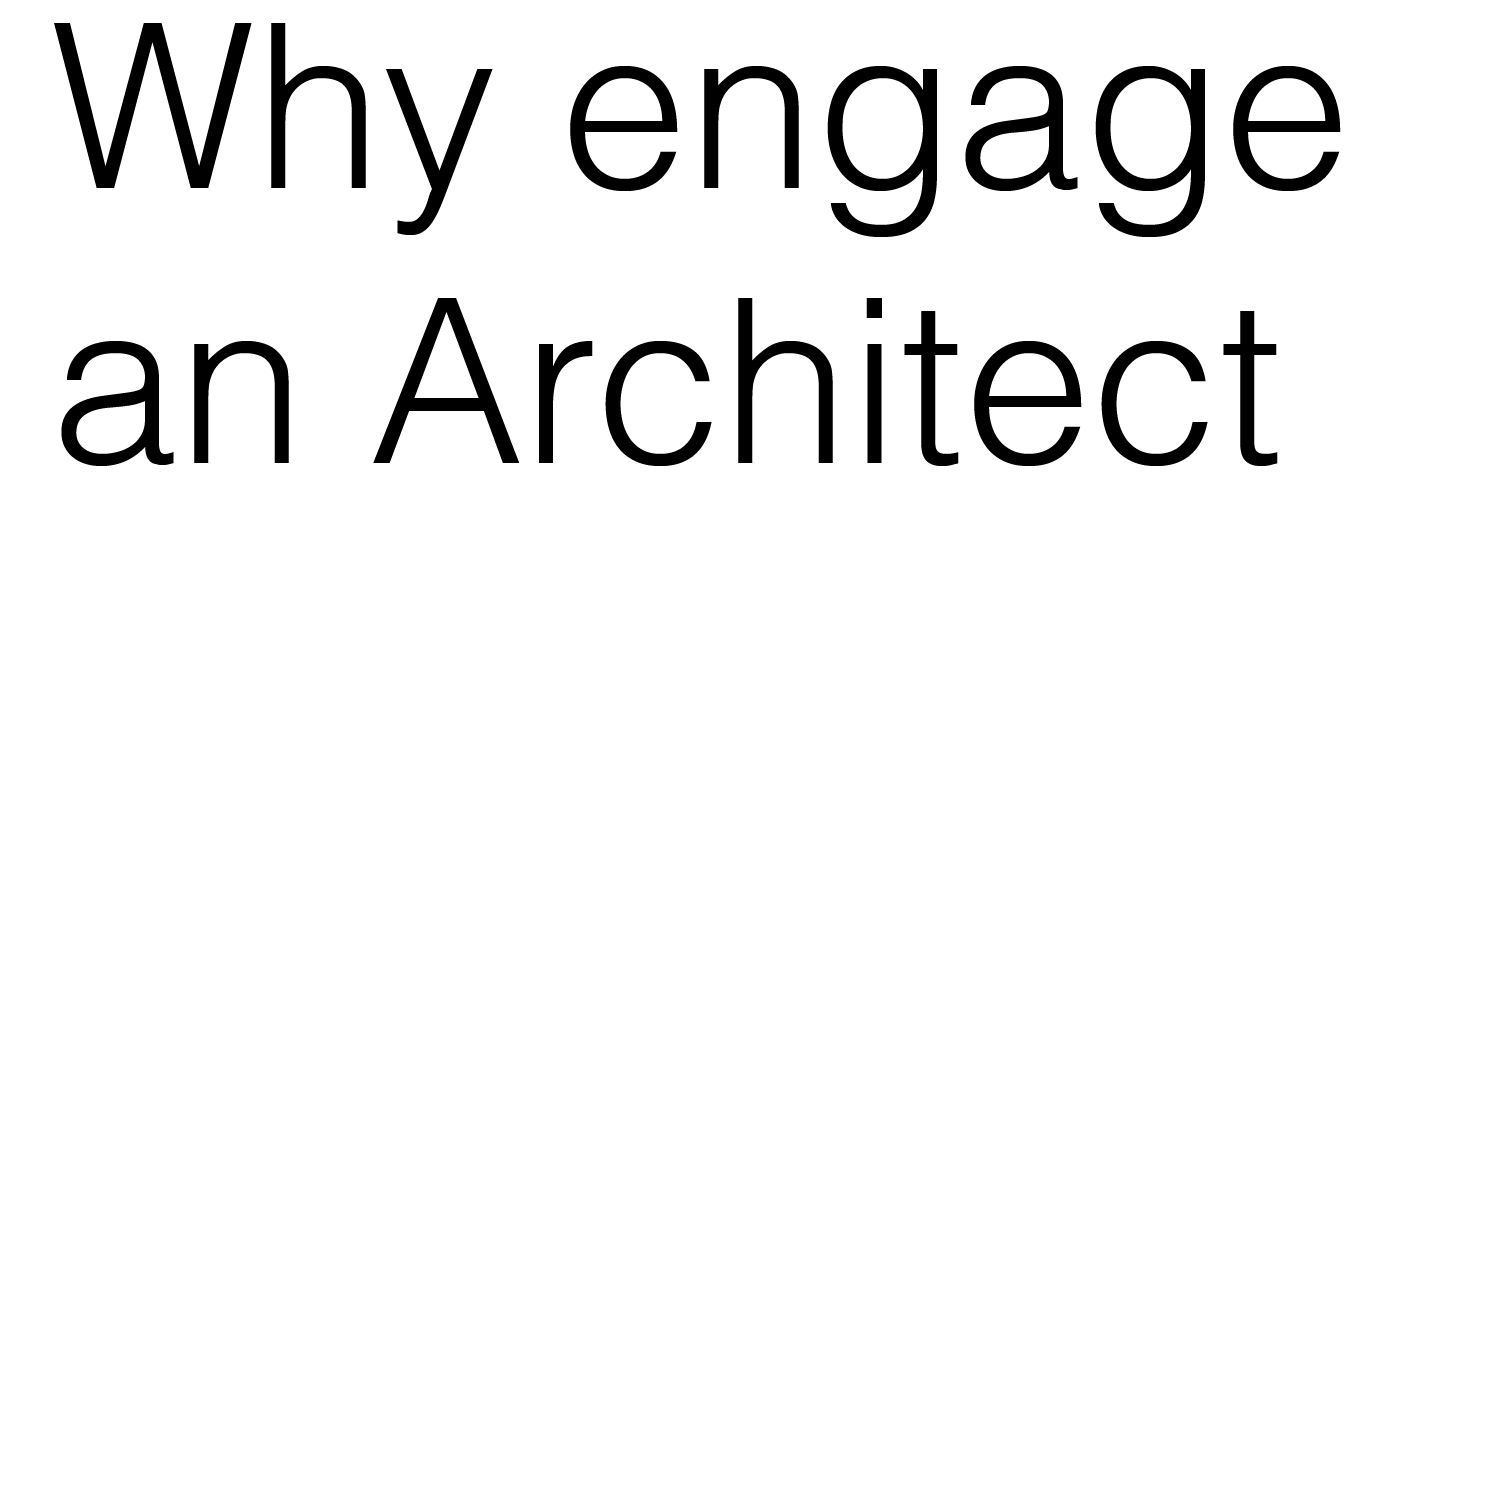 Why engage an architect